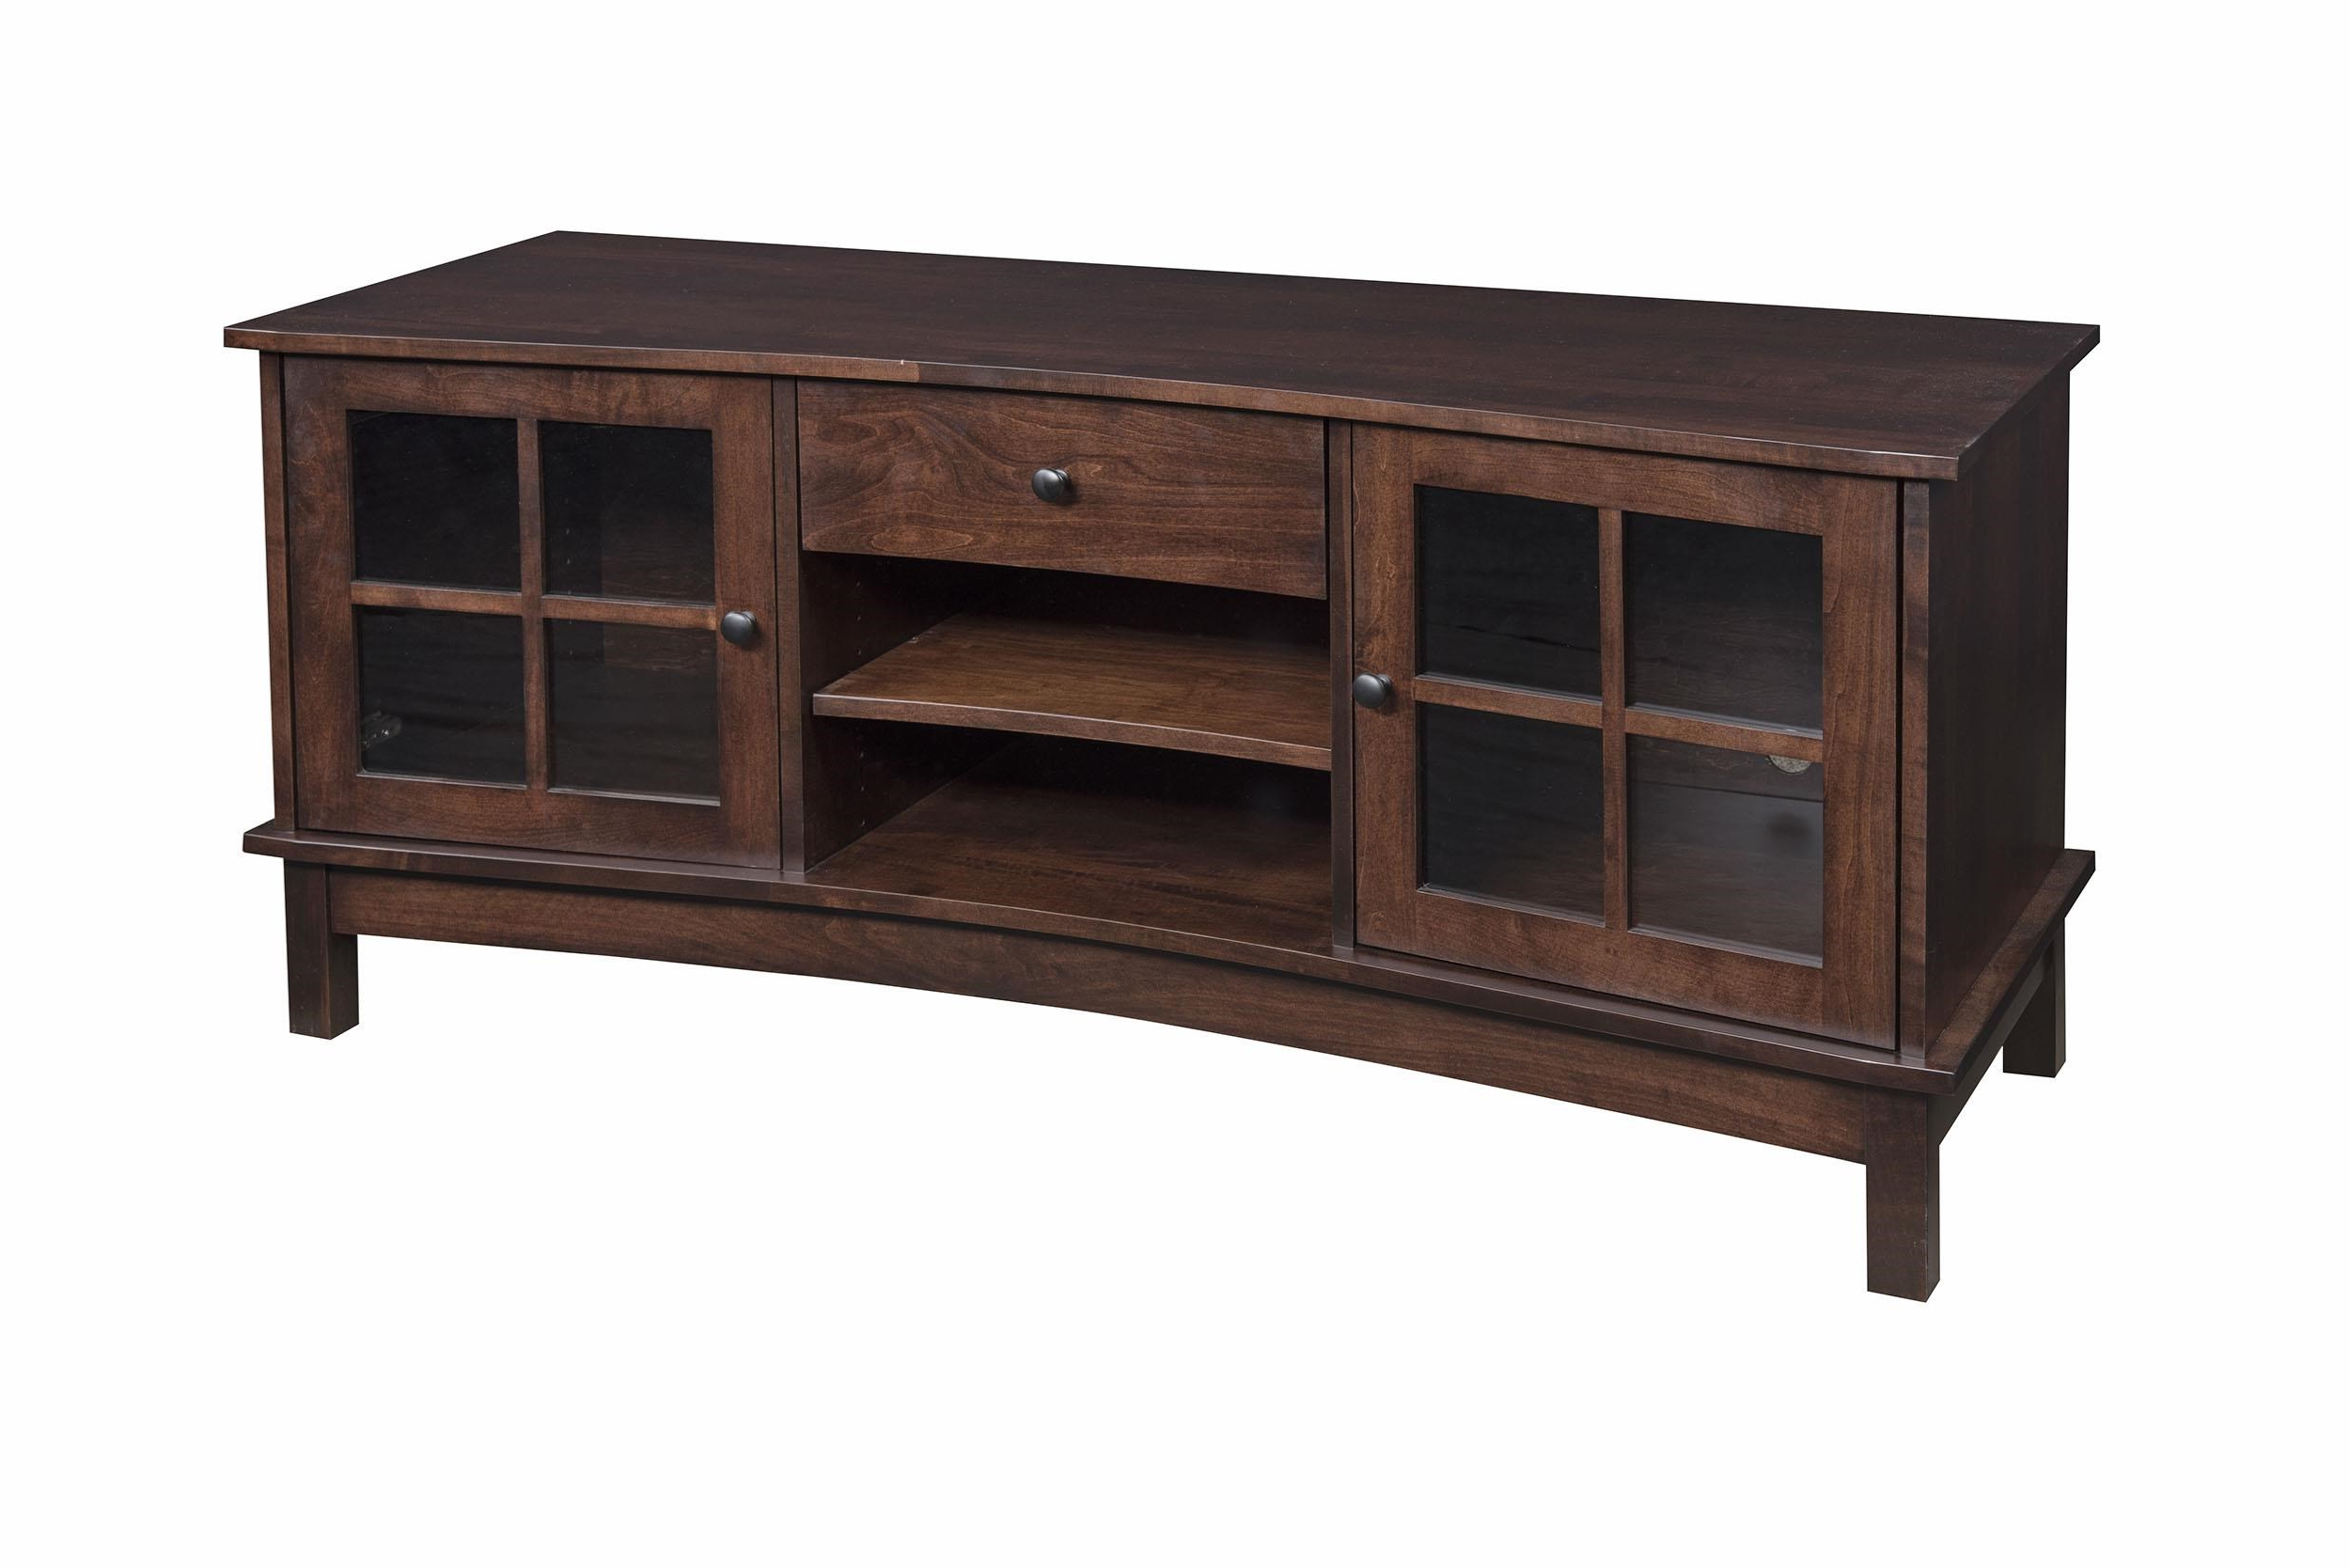 "Preferred Wayside Custom Furniture Solid Wood Tv Stands 60"" Concave Tv Stand Pertaining To Wood Tv Stands (Gallery 6 of 20)"